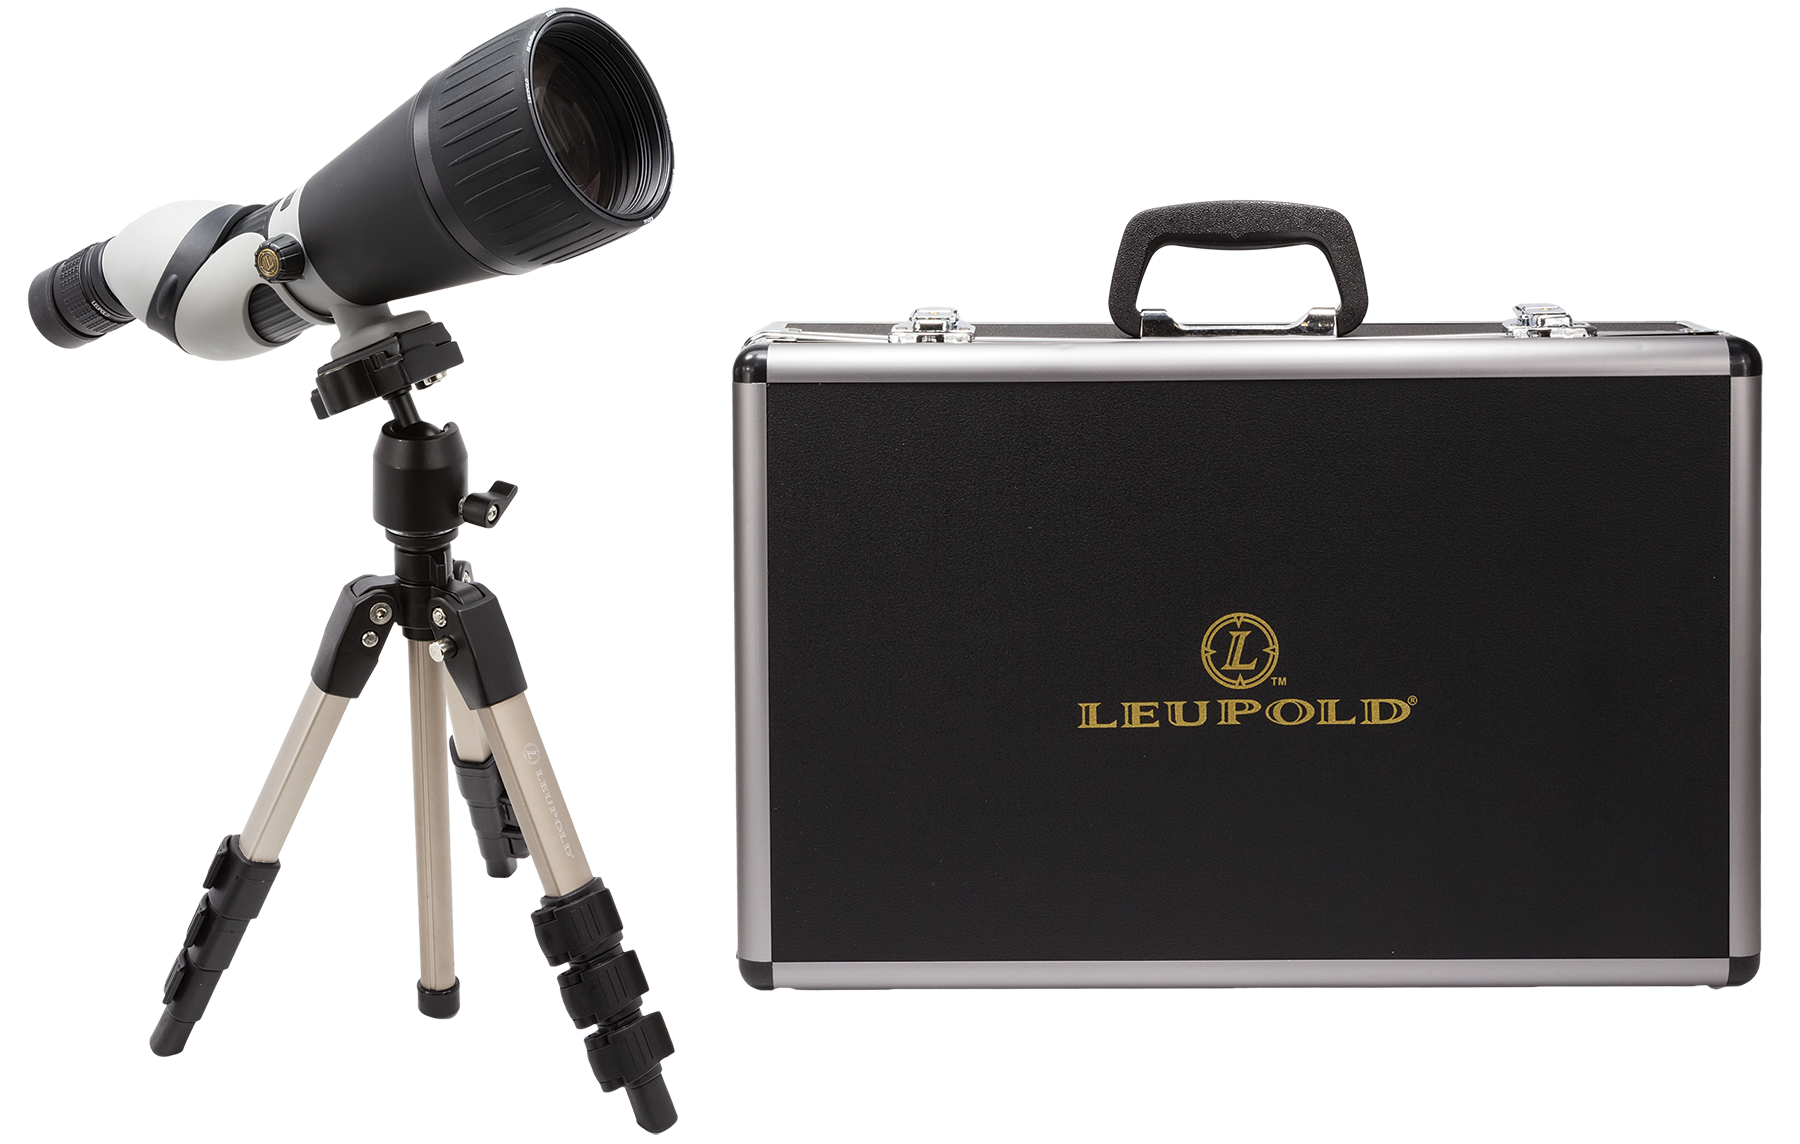 Leupold 64305  25-60x 80mm 94-52 ft @ 1000 yds 17.4-17.9mm Black/Gray